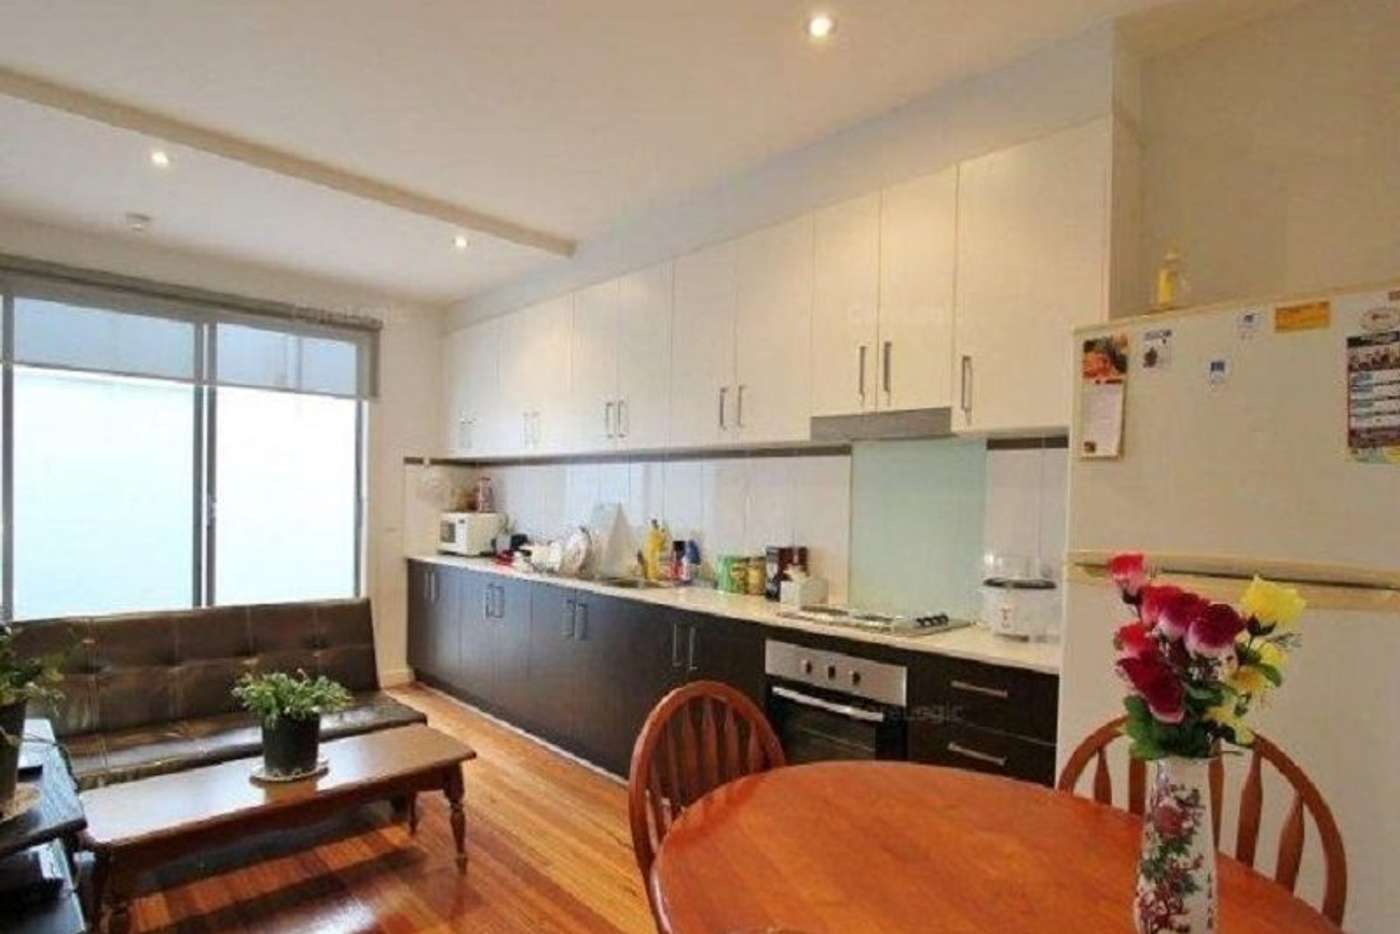 Main view of Homely apartment listing, 3/98 Nicholson street, Footscray VIC 3011